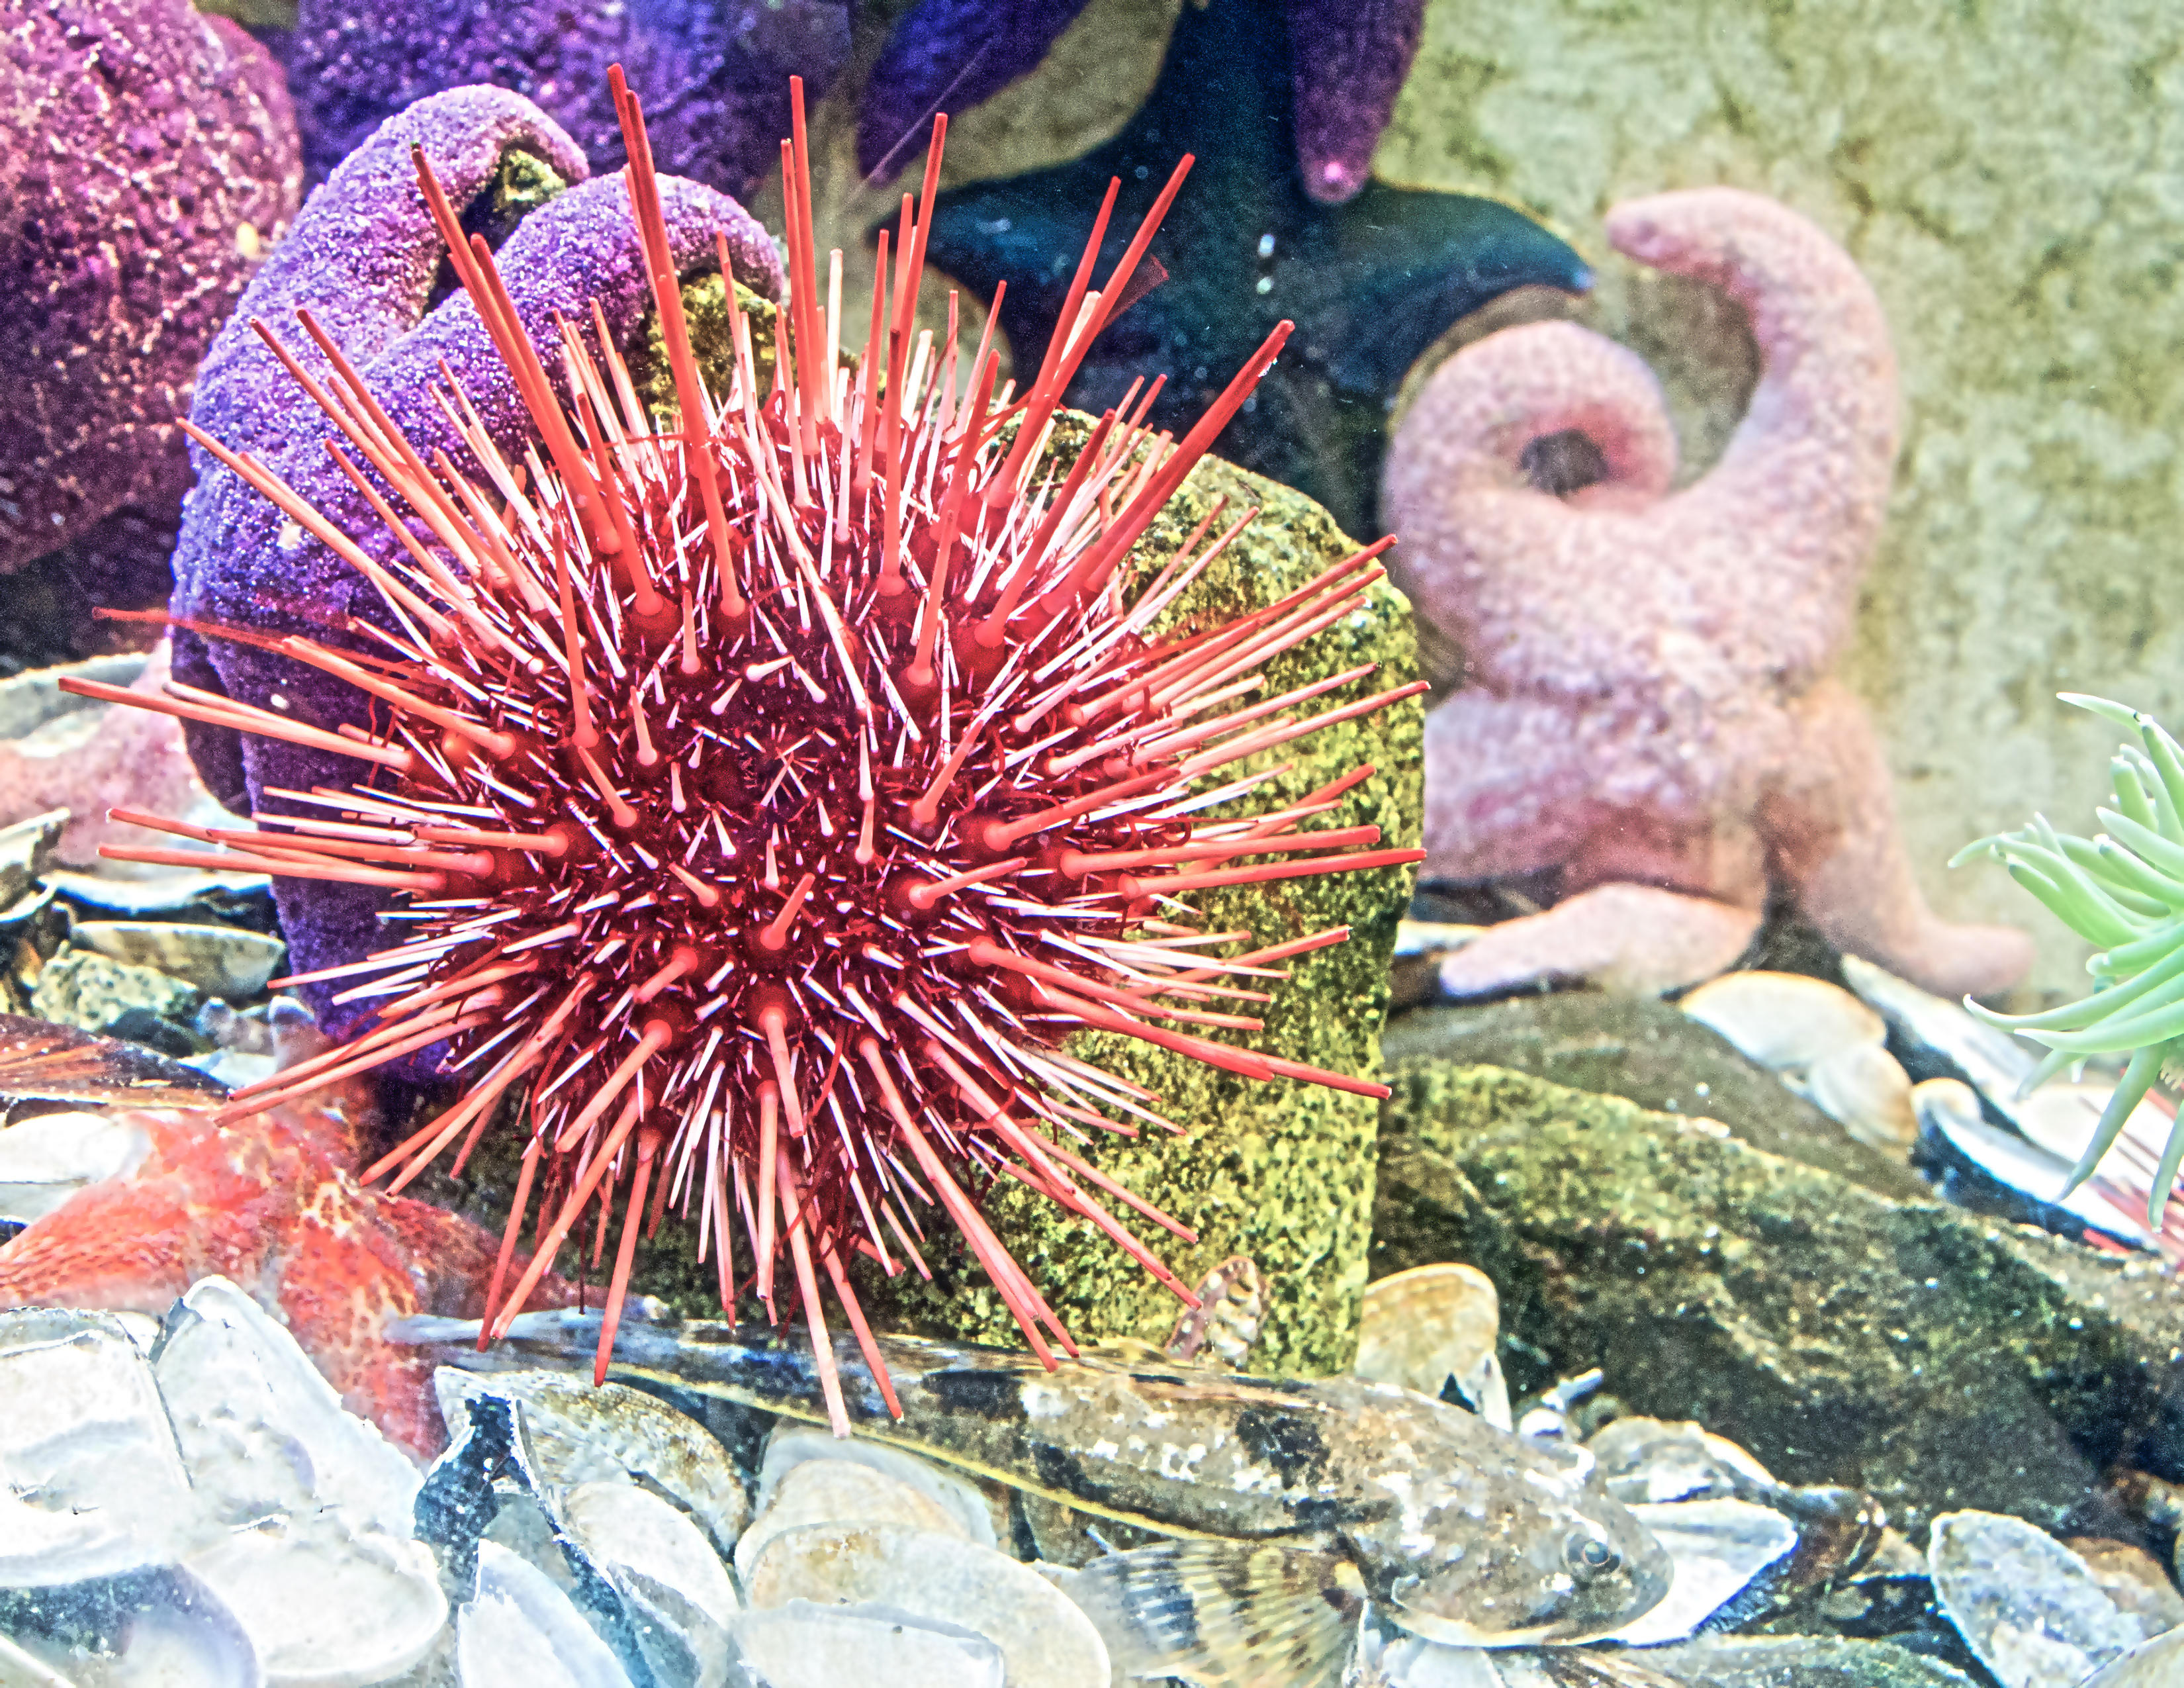 Spiny thing with starfish